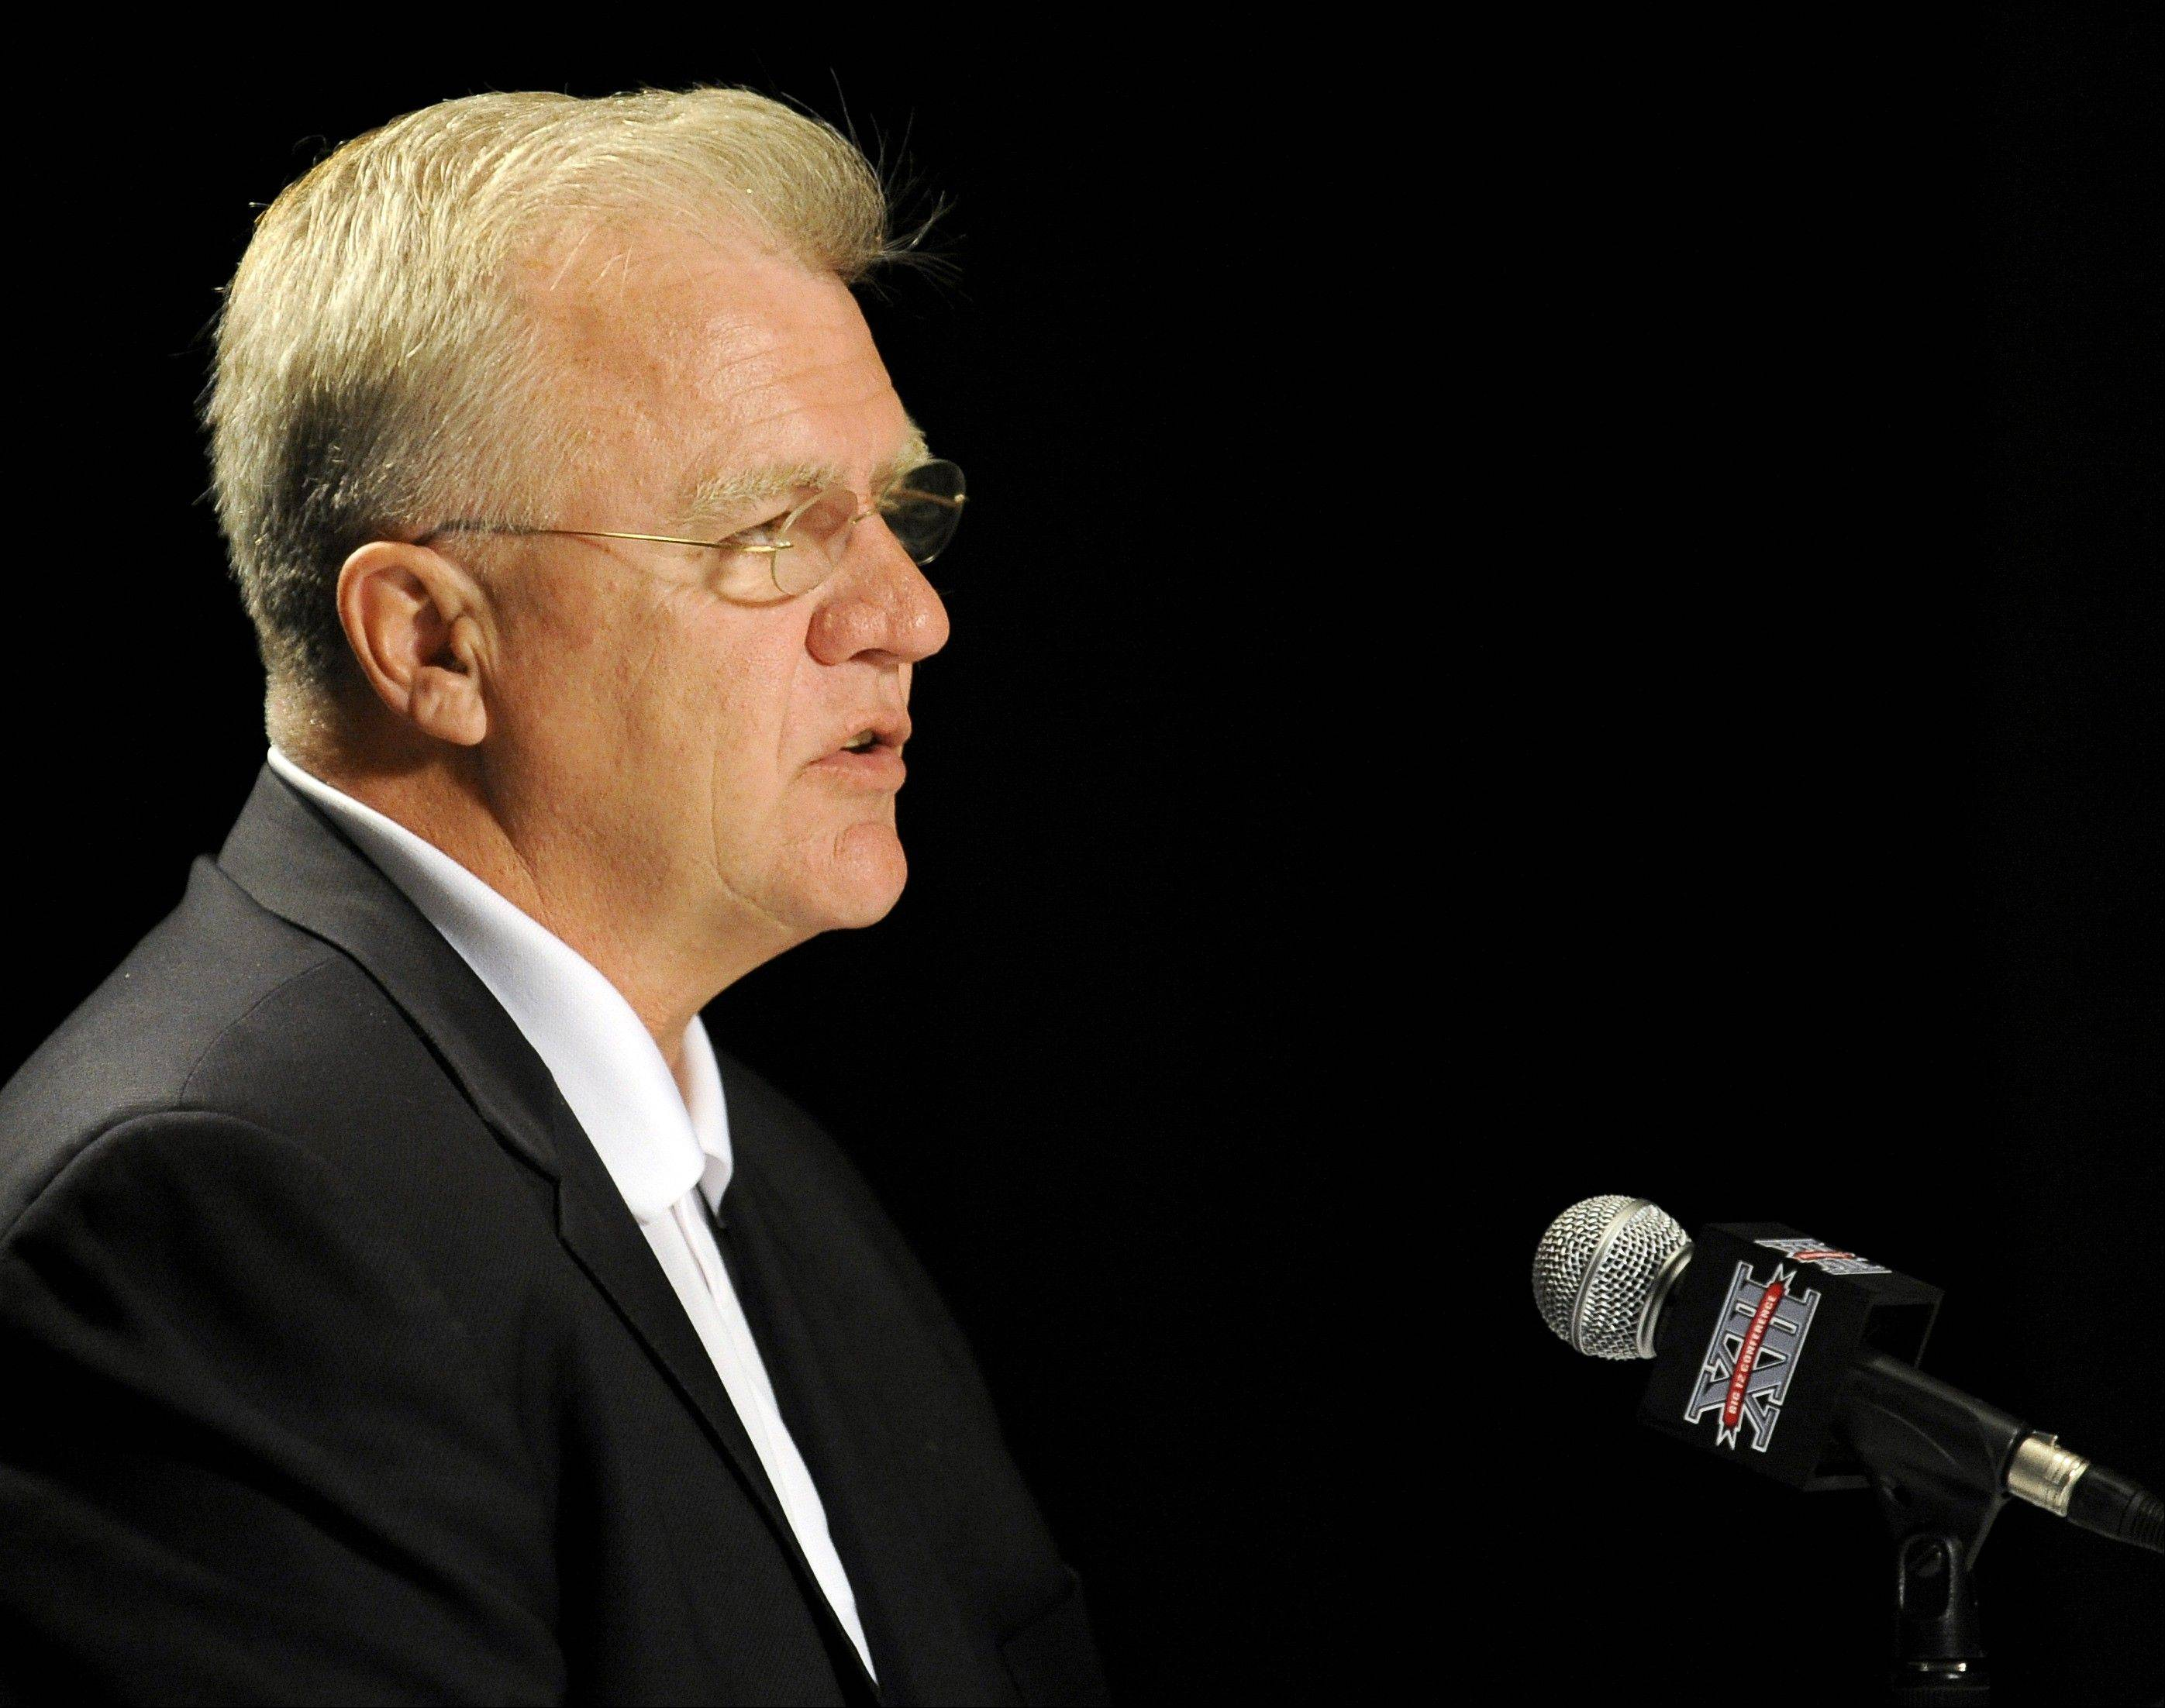 Texas A&M head coach Mike Sherman, shown here during the recent Big 12 Media Day conference, could be leading the Aggies in the SEC next fall. Texas A&M officials have told the Big 12 Conference they will leave next July if they are allowed to join another conference.